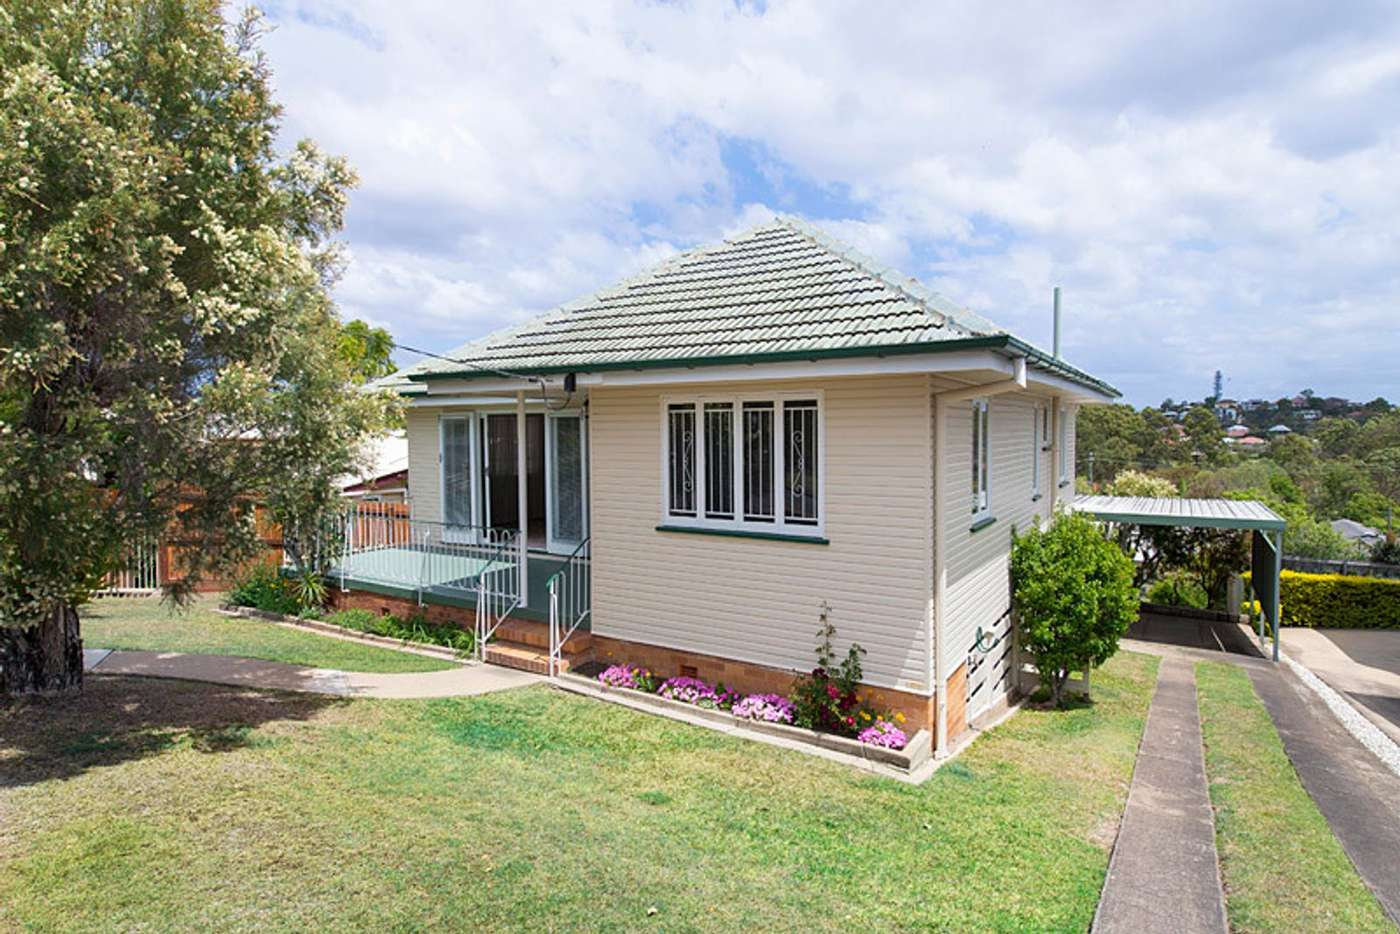 Main view of Homely house listing, 43 Fleetway Street, Morningside QLD 4170